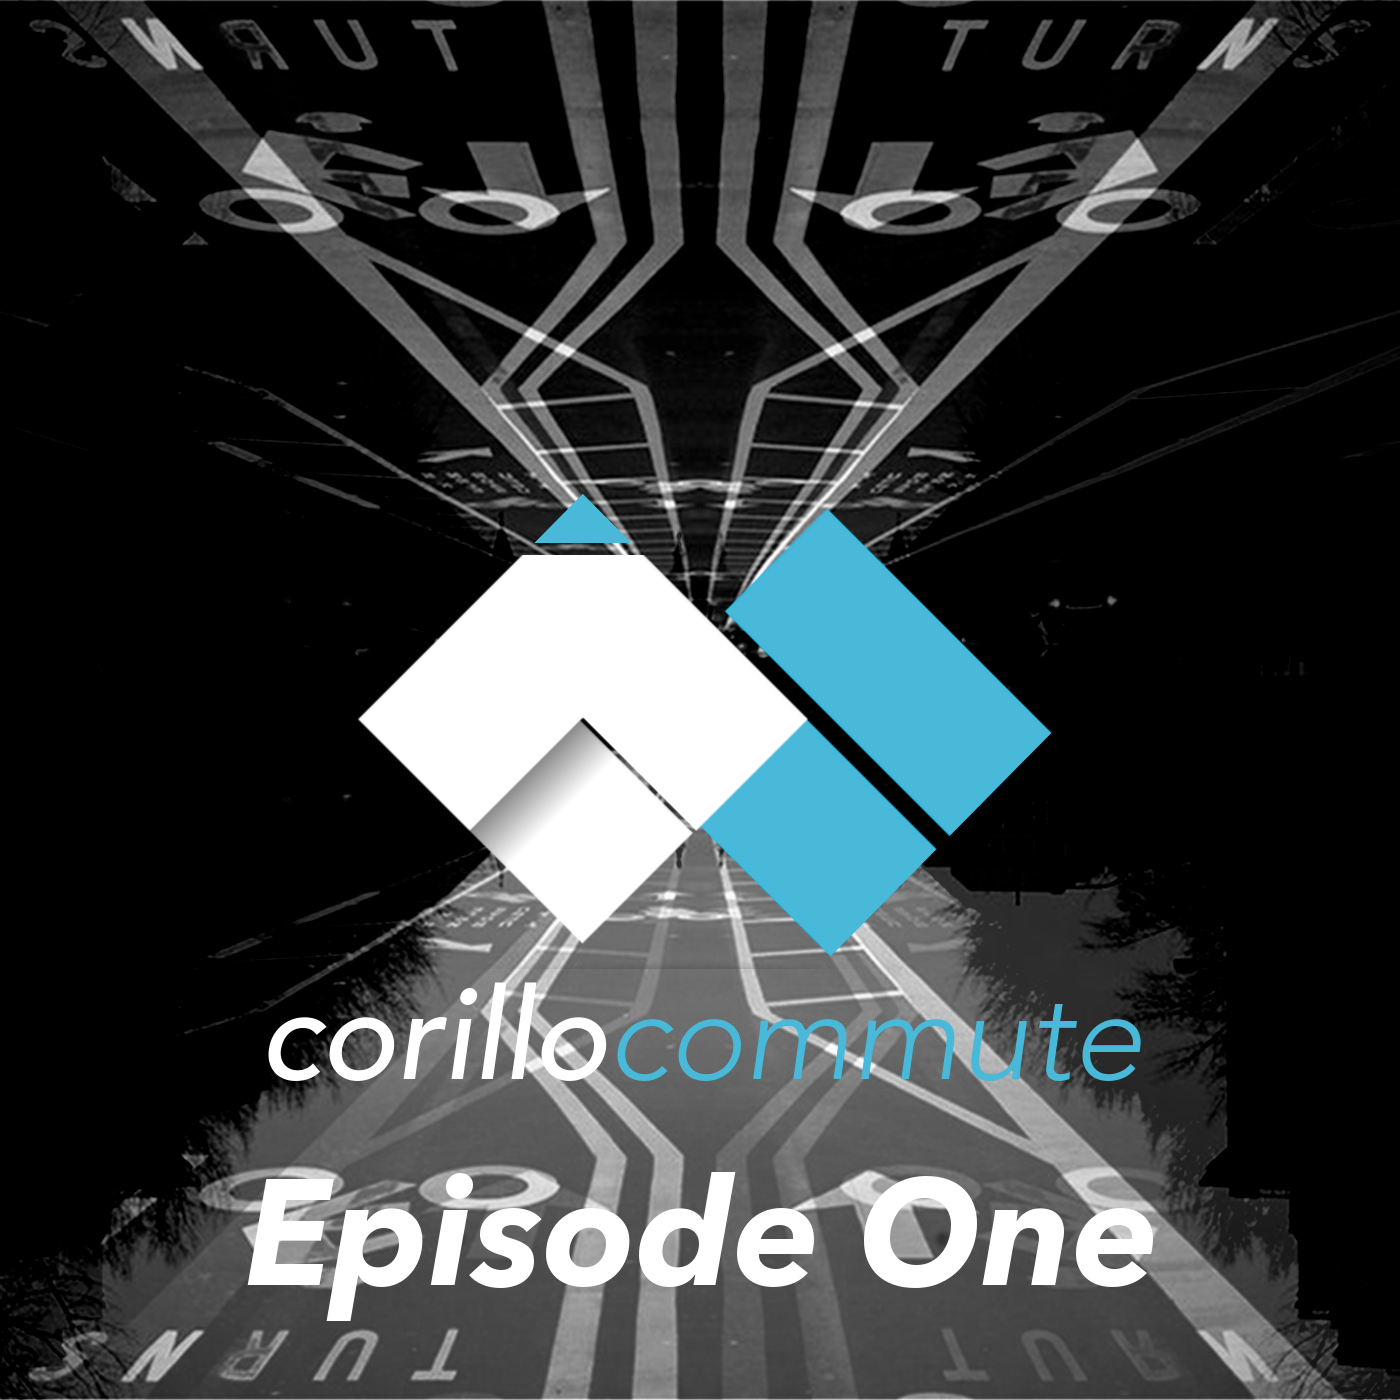 Corillo Commute Podcast - Episode One